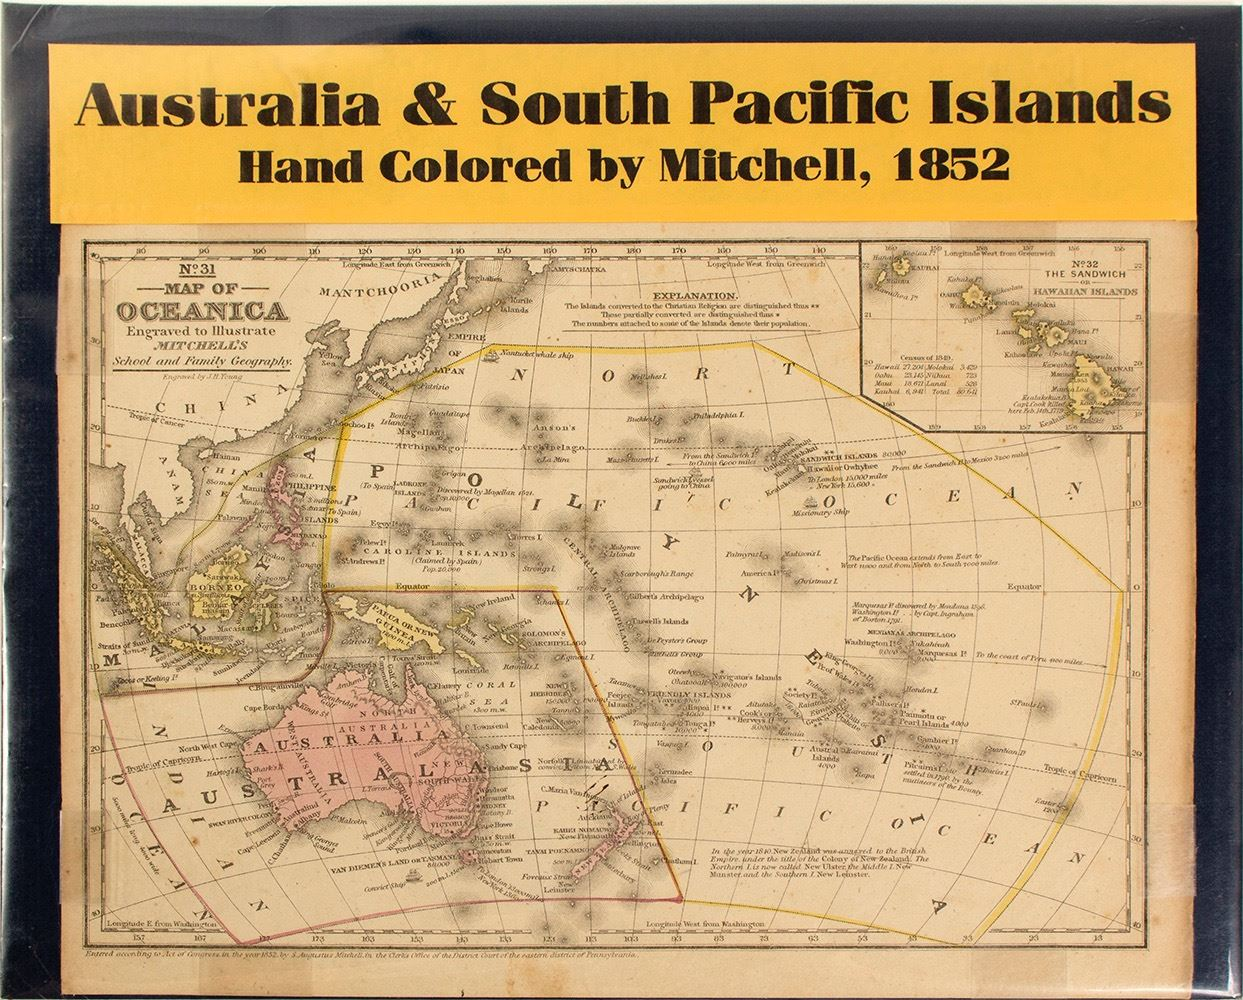 Map of Australia & South Pacific Islands